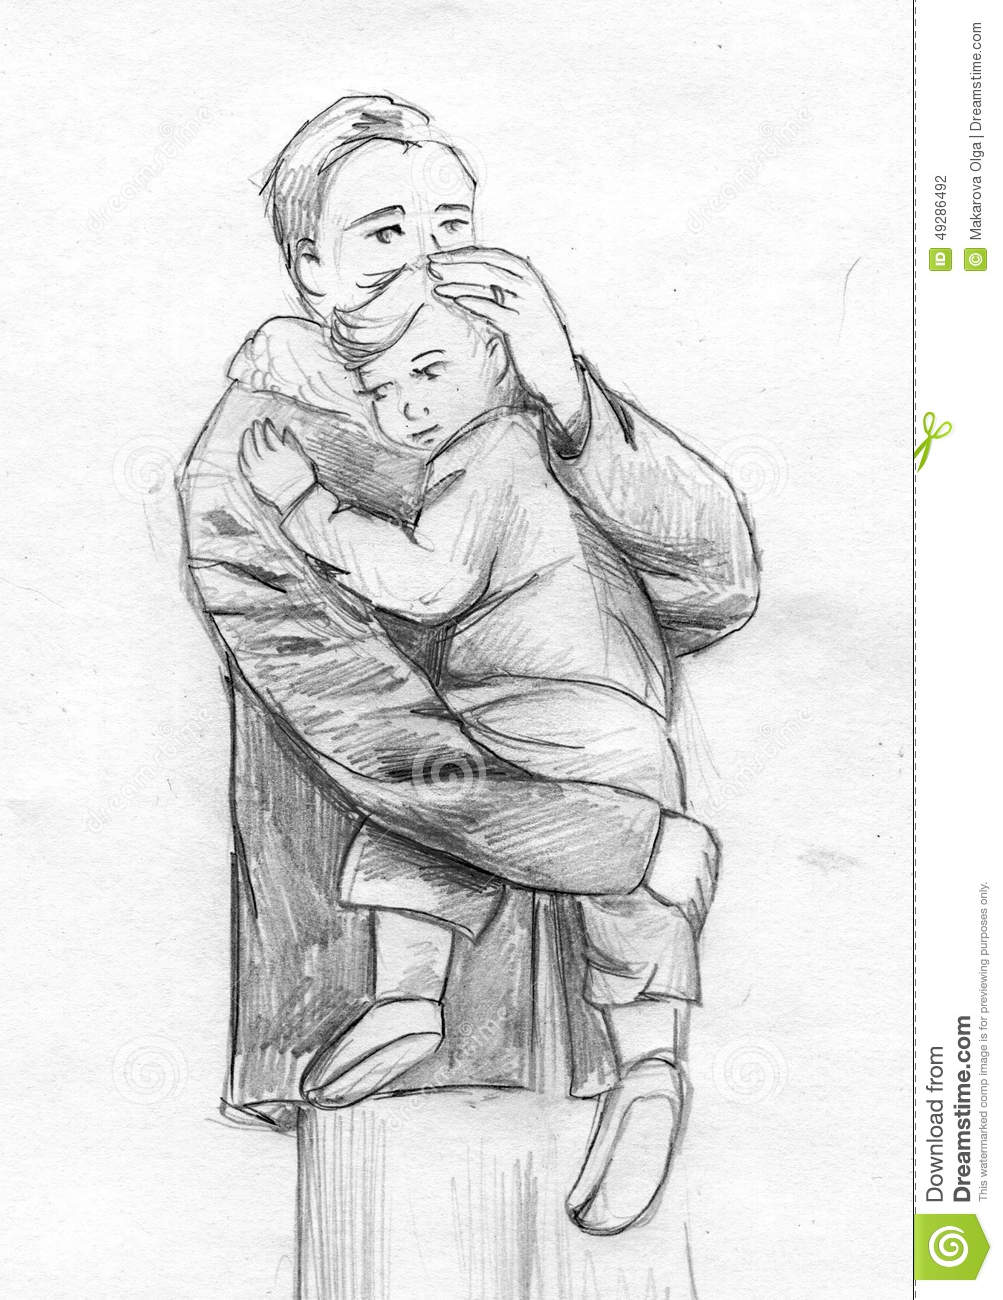 Father and child pencil sketch